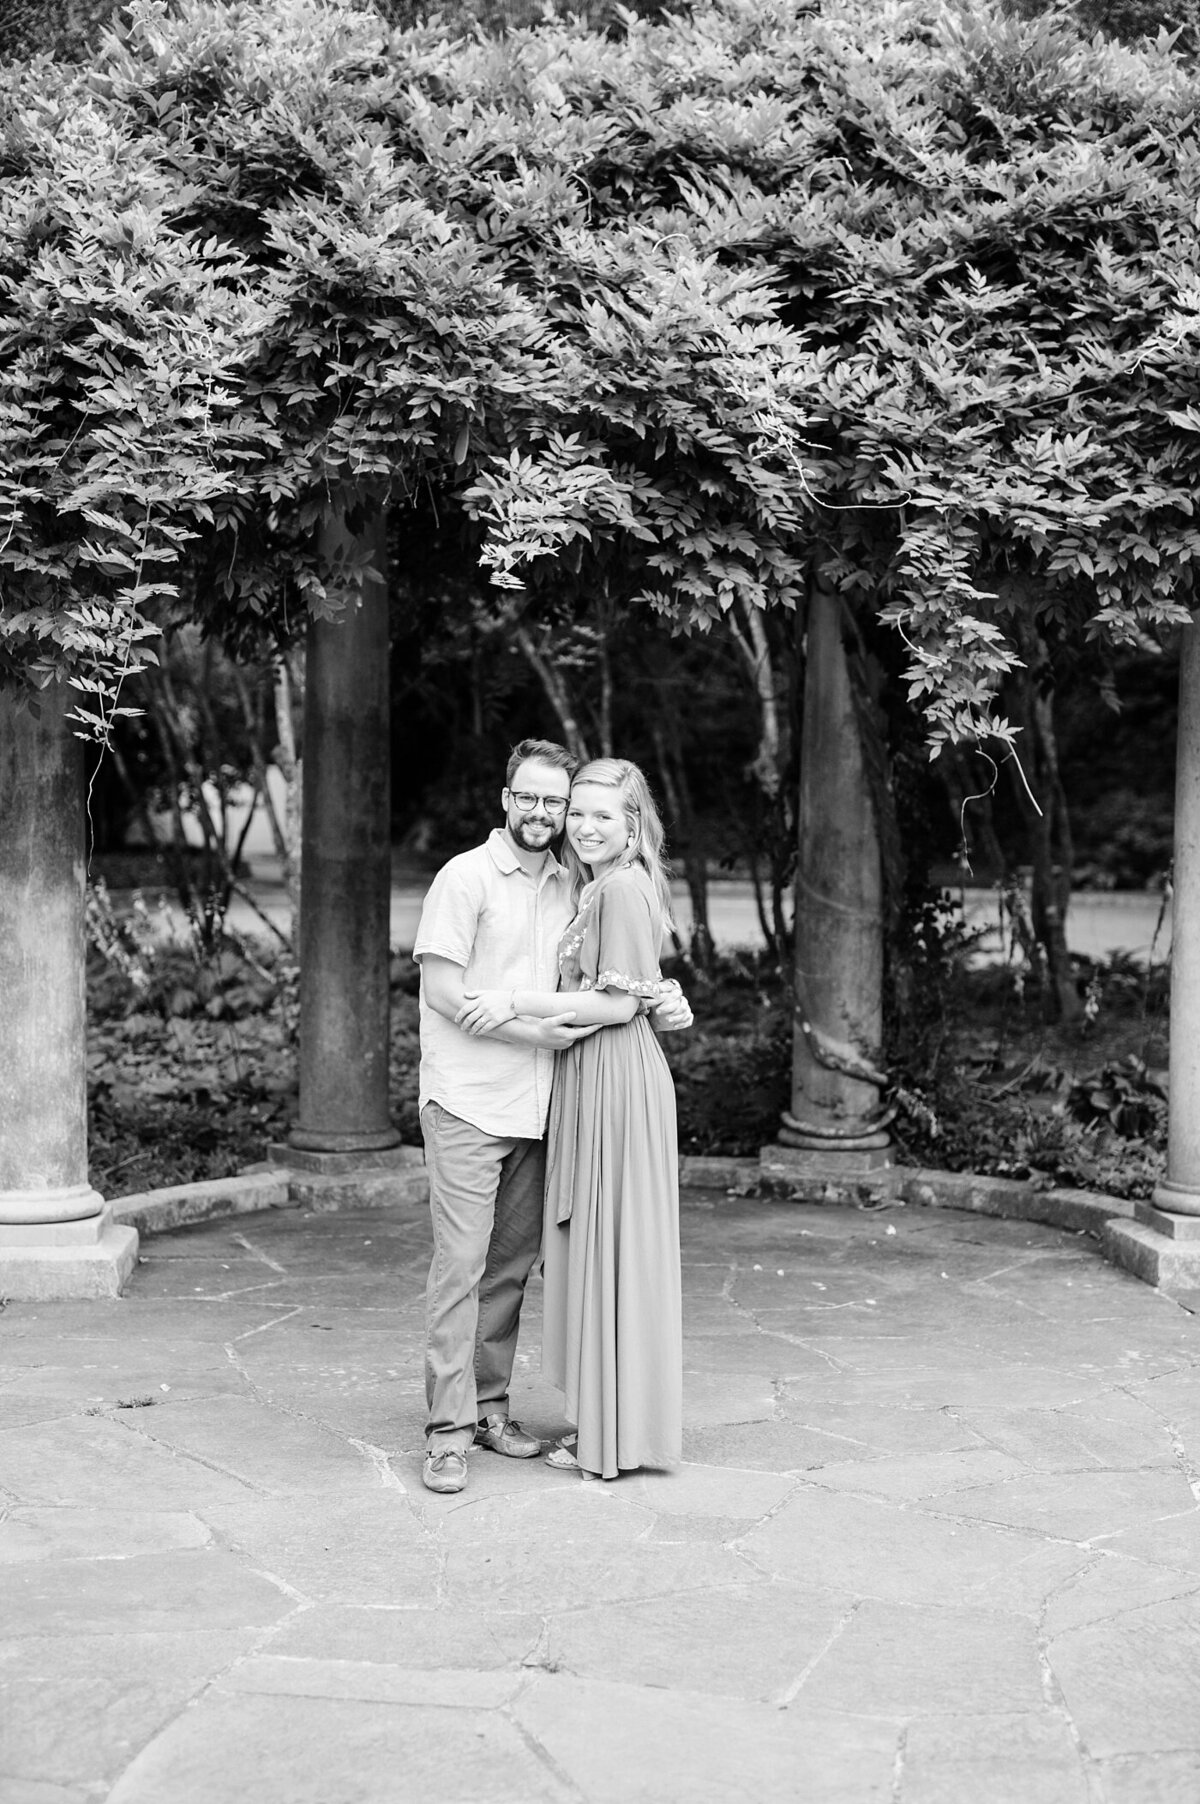 cator-woolford-gardens-engagement-wedding-photographer-laura-barnes-photo-shackelford-32